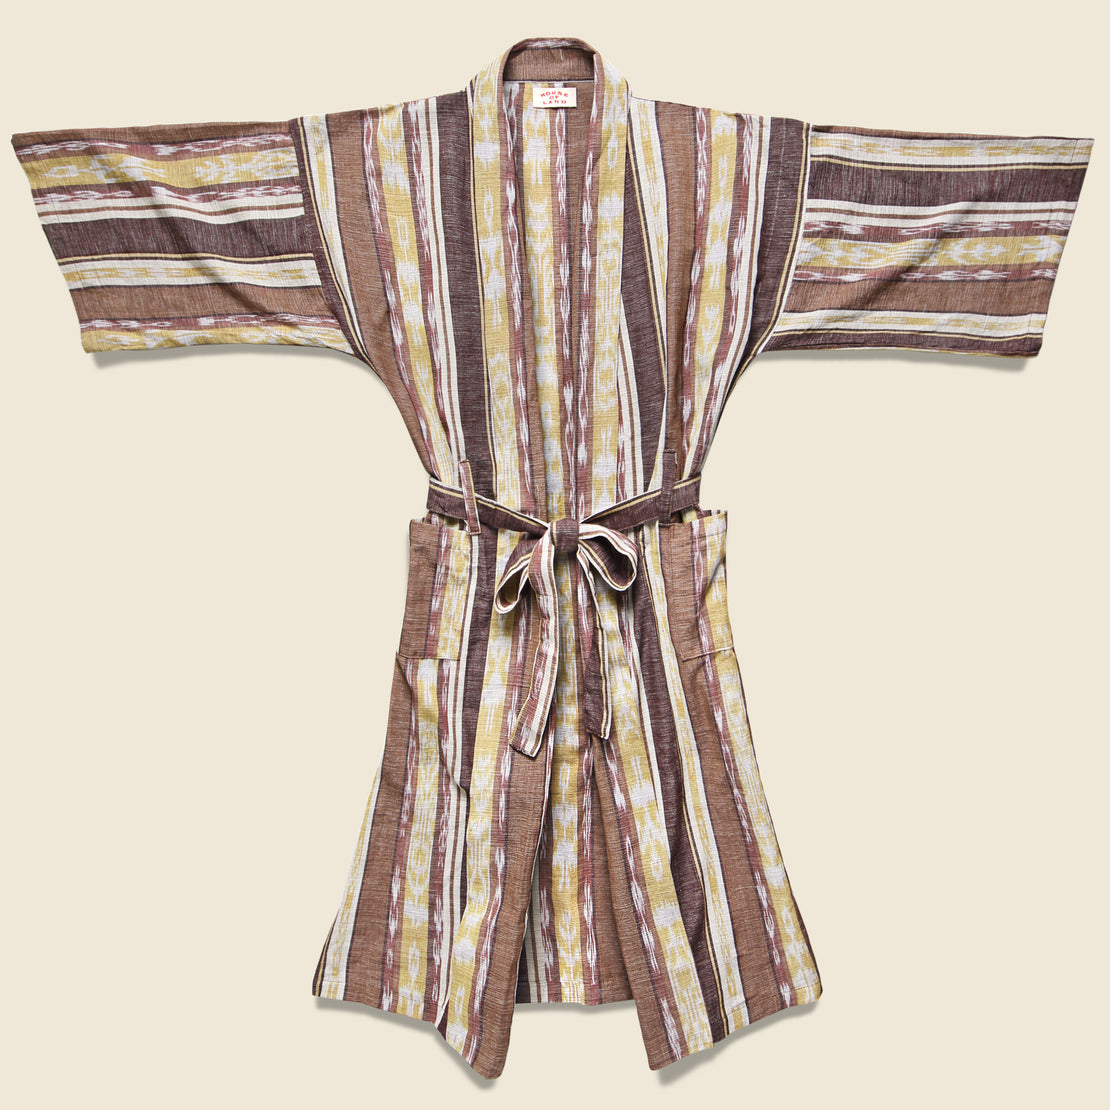 House of LAND Guatemalan Robe - Brown/Yellow/Cream